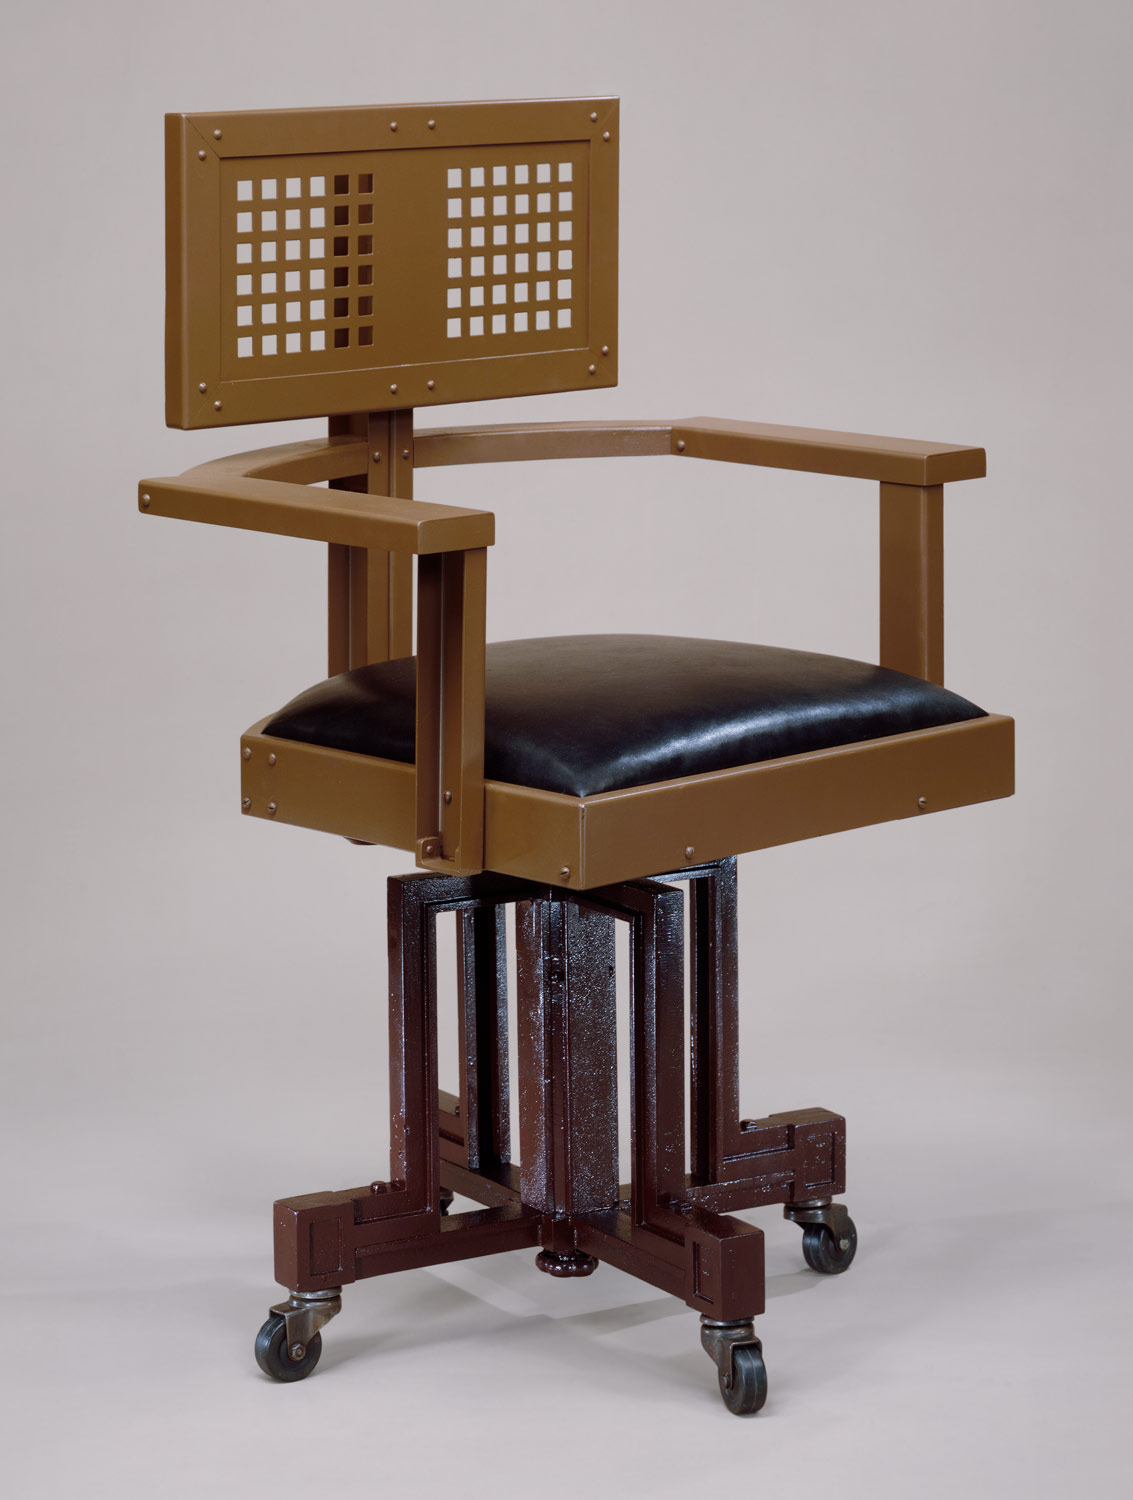 Frank Lloyd Wright Chairs Revolving Armchair Frank Lloyd Wright 1979 130 Work